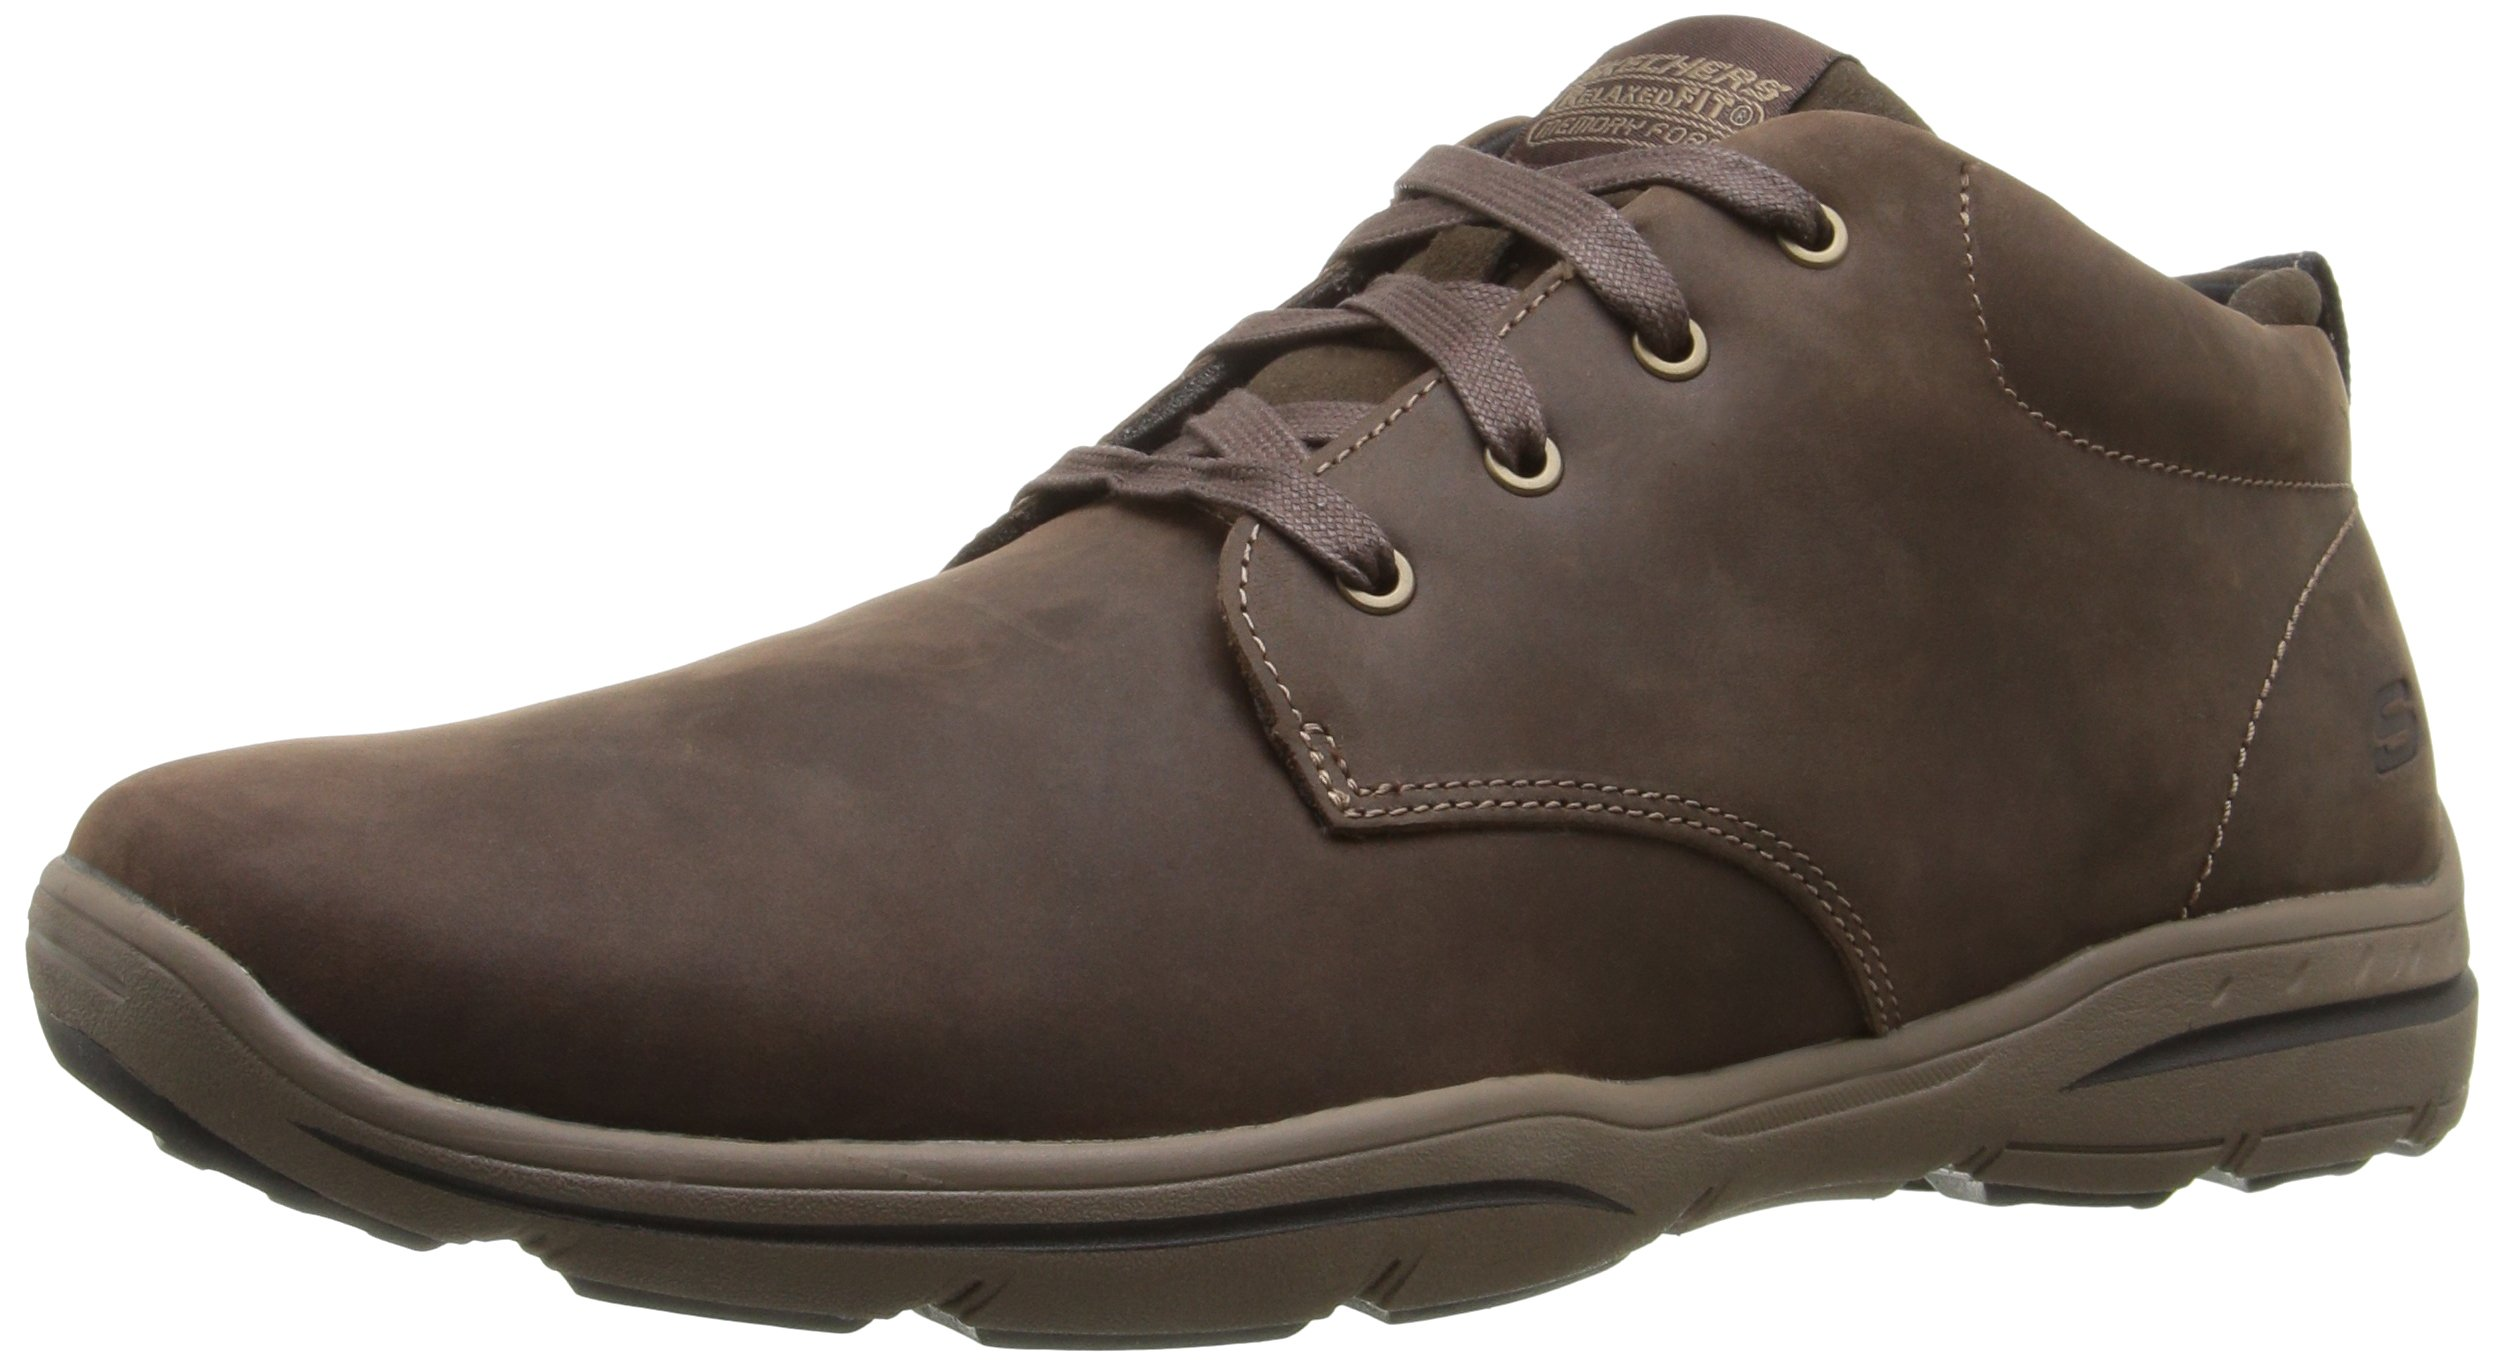 Skechers USA Men's Harper Meldon Chukka Boot,Chocolate,10.5 M US